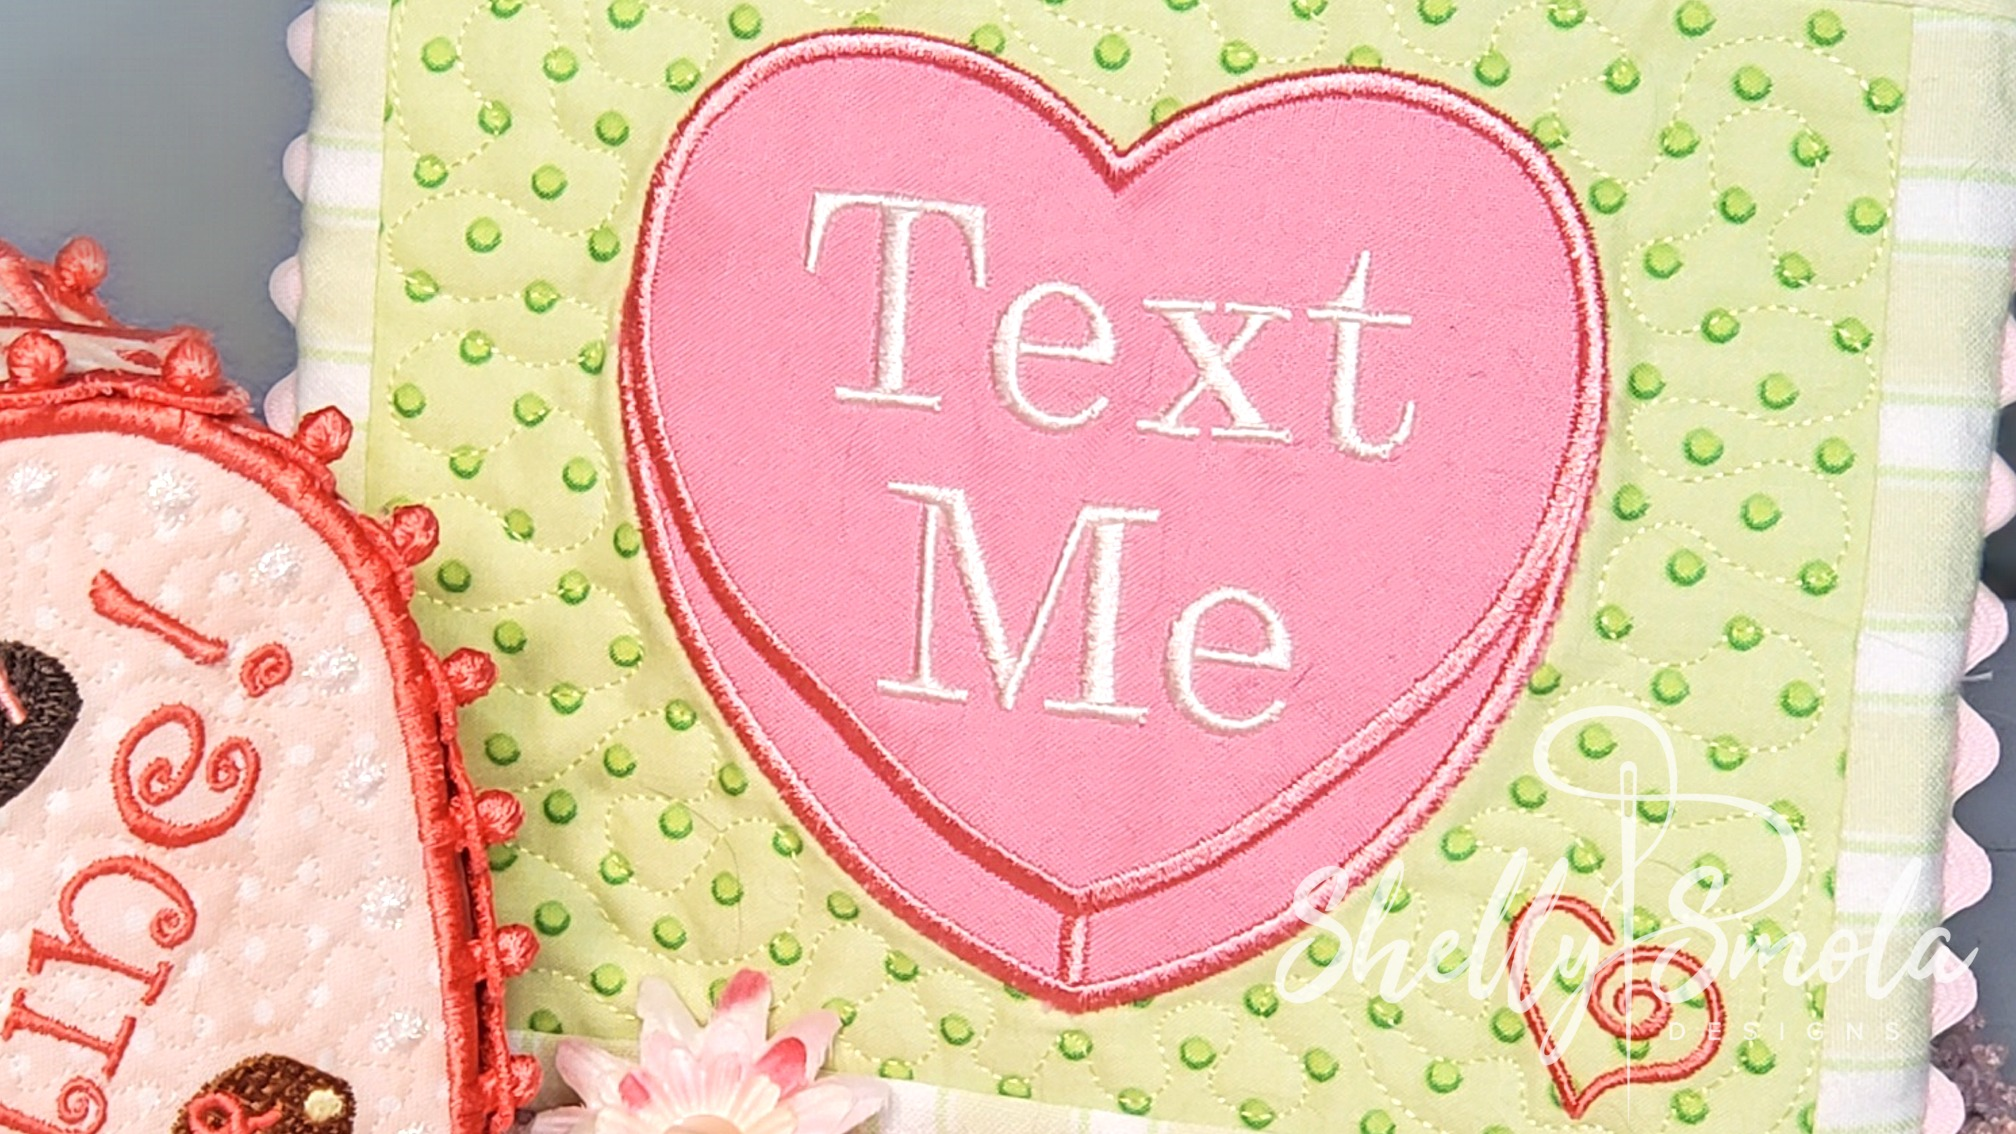 Text Me Candy Heart by Shelly Smola